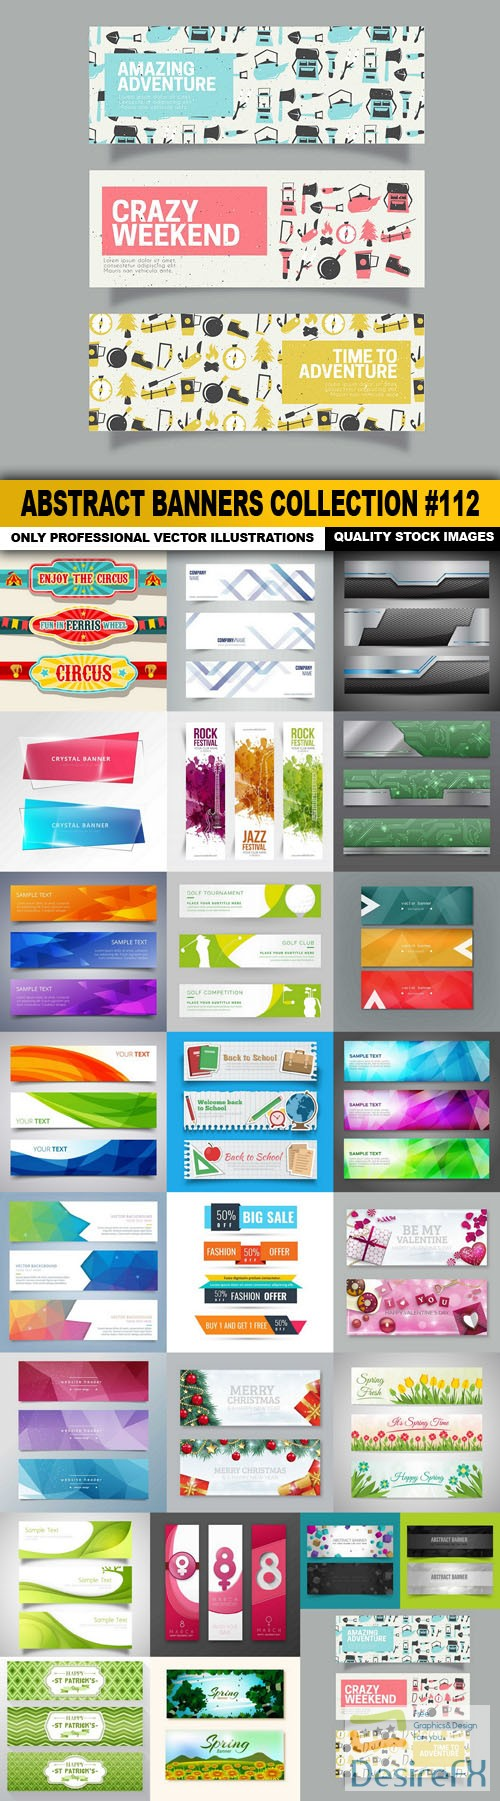 stock-vectors - Abstract Banners Collection #112 - 25 Vectors